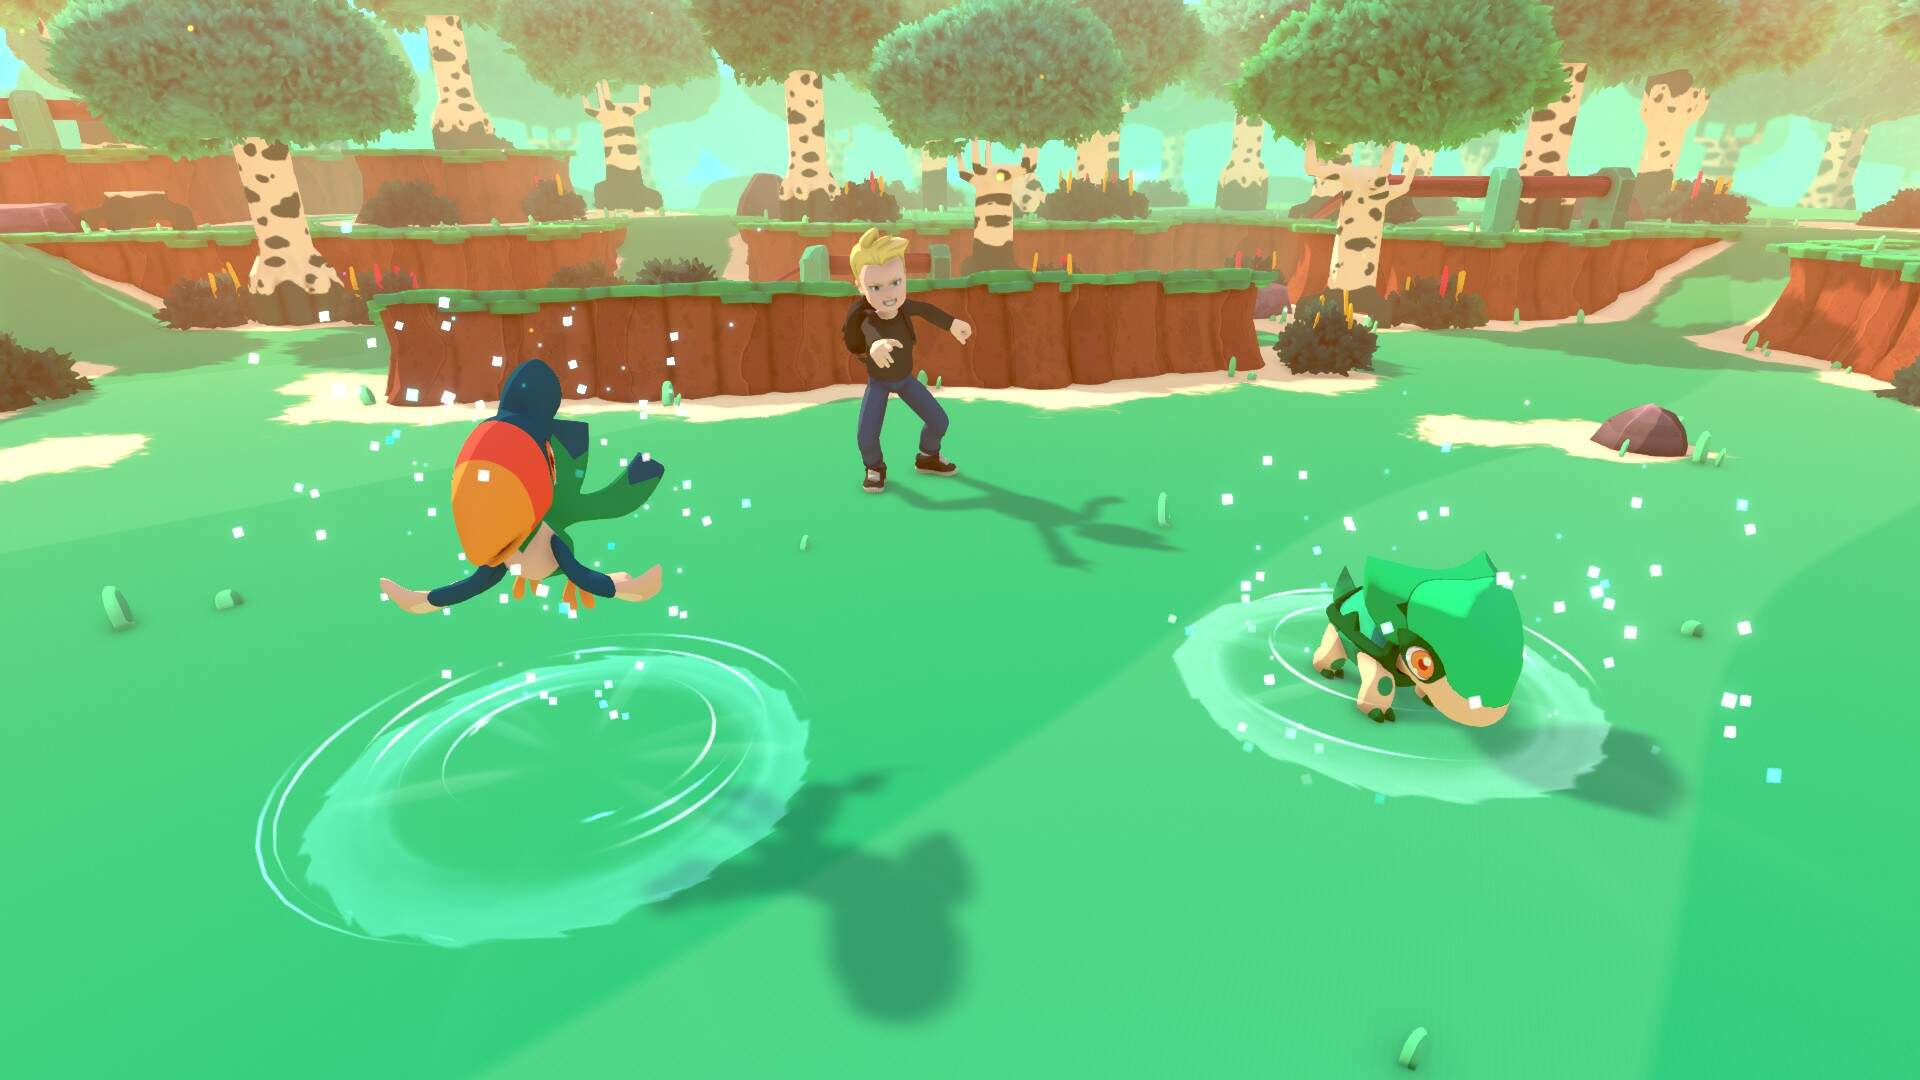 Temtem: What to Do About 'Server Connection Has Been Lost' Error and Queue Issues